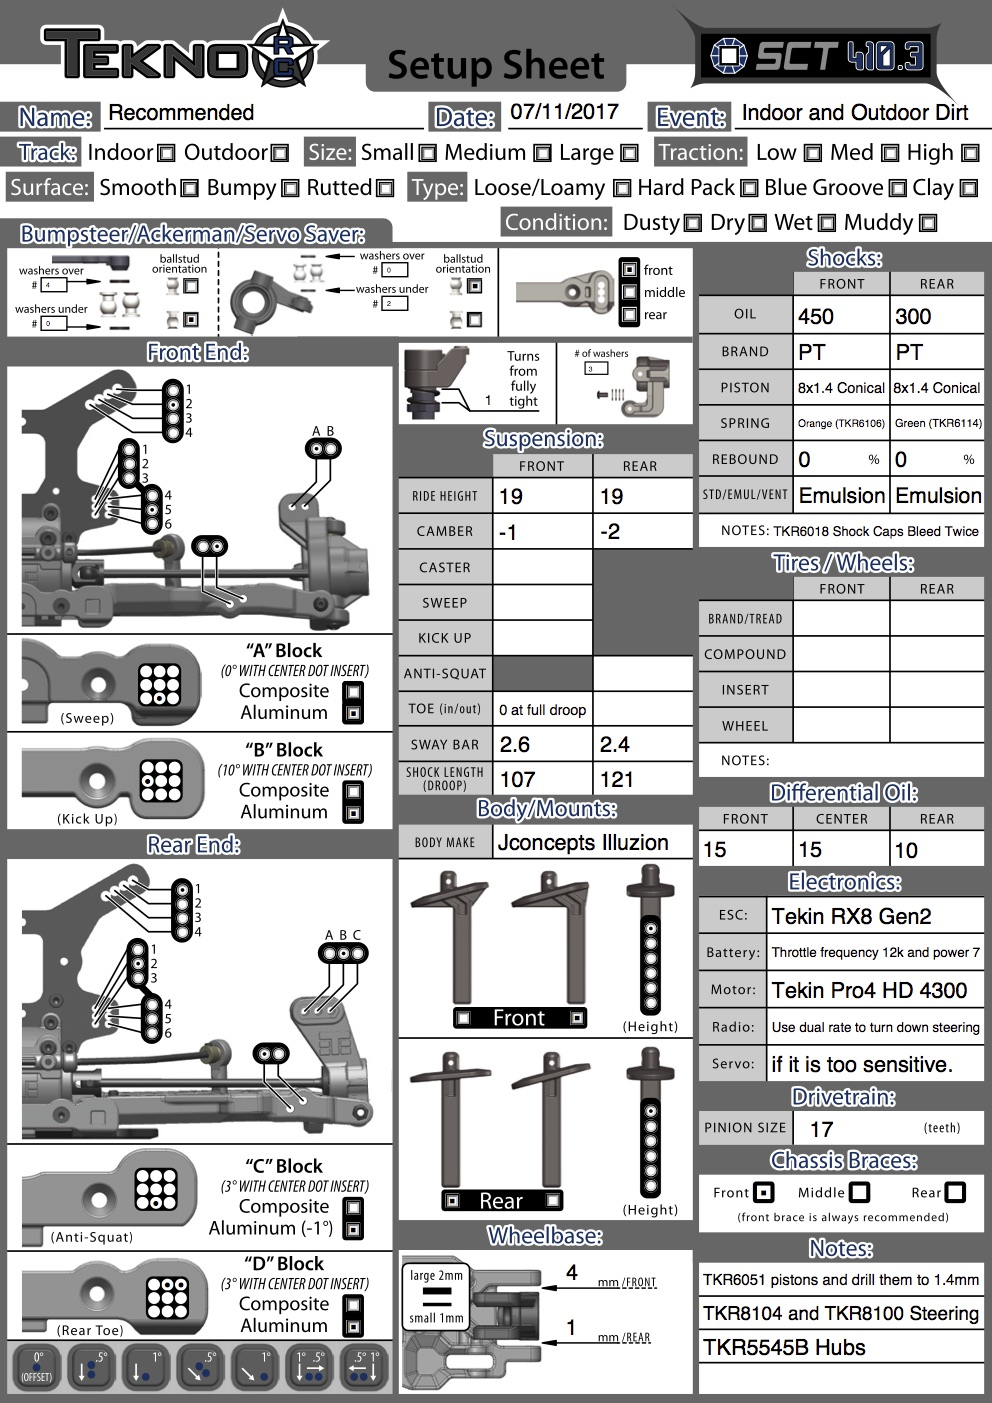 Setup Sheets – Tekno RC, LLC